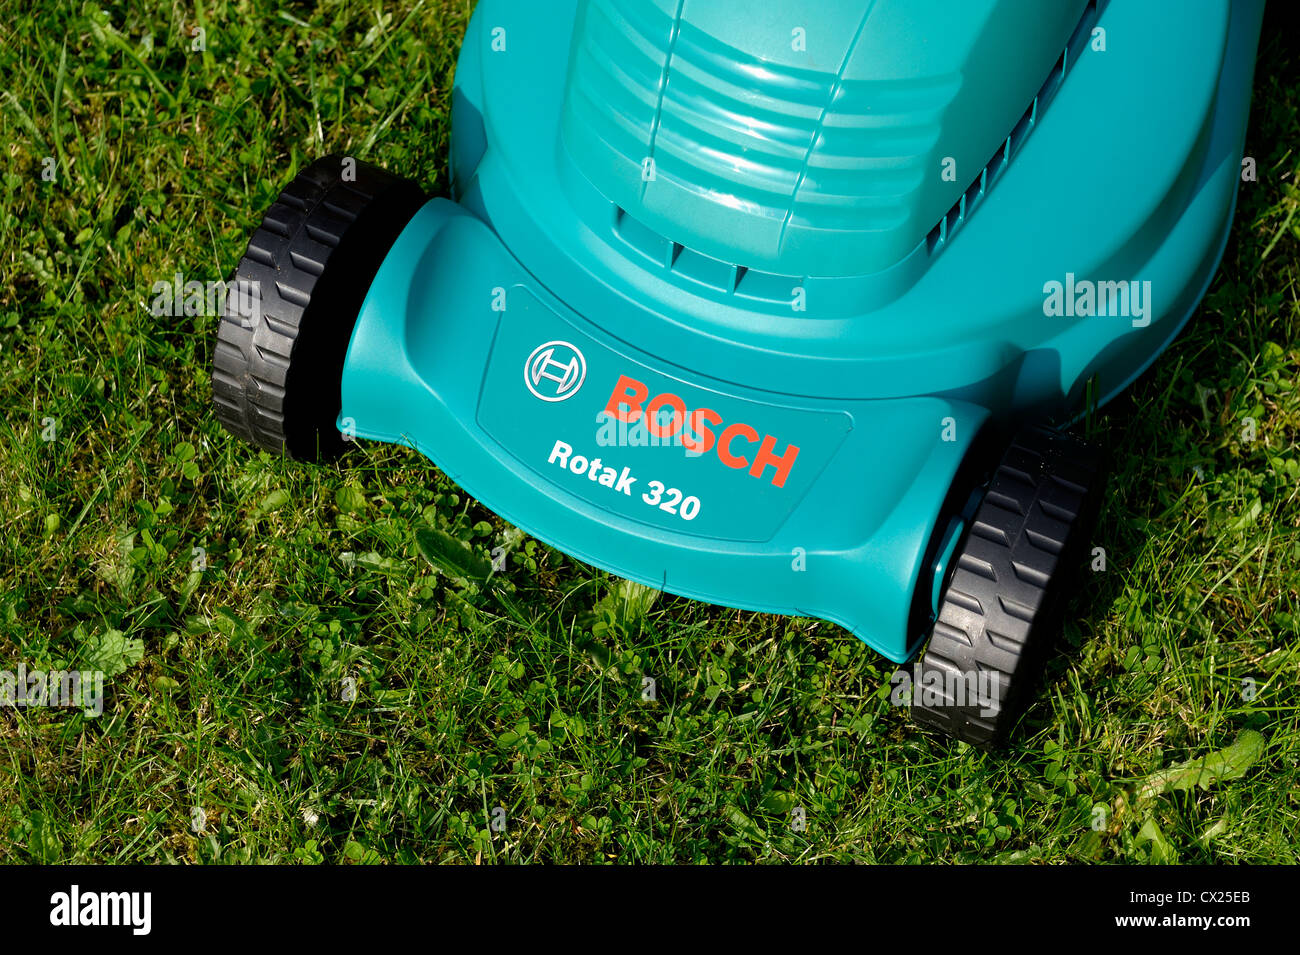 bosch rotak 320 electric rotary lawnmower stock photo royalty free image 50450019 alamy. Black Bedroom Furniture Sets. Home Design Ideas